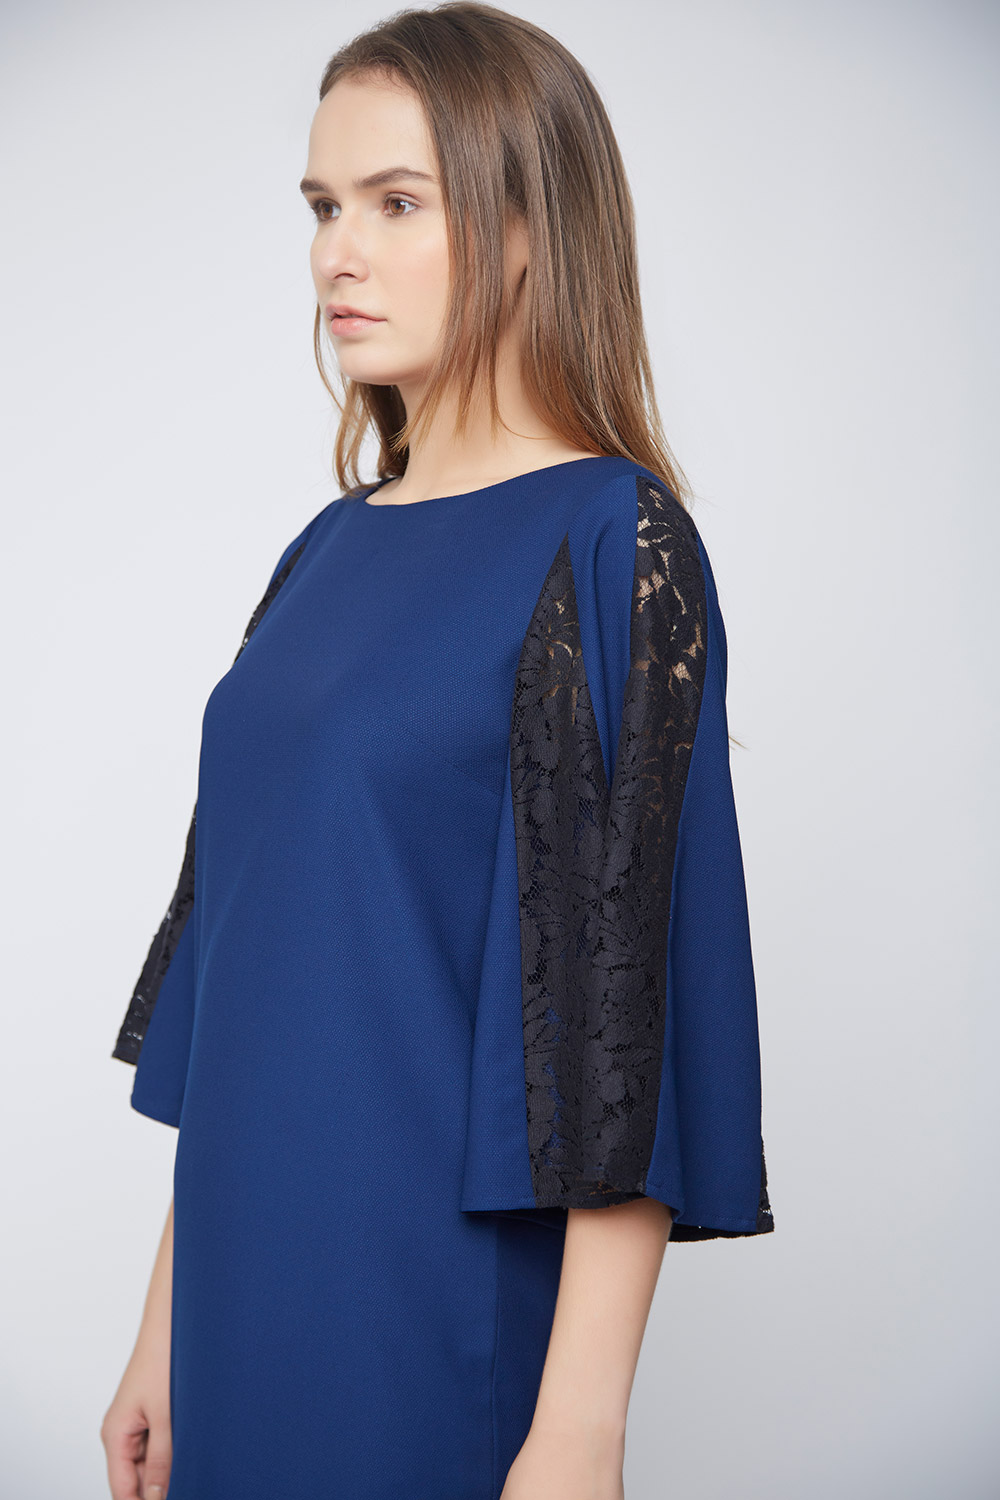 Blue Dress Black Net Pannel Sleeves -2